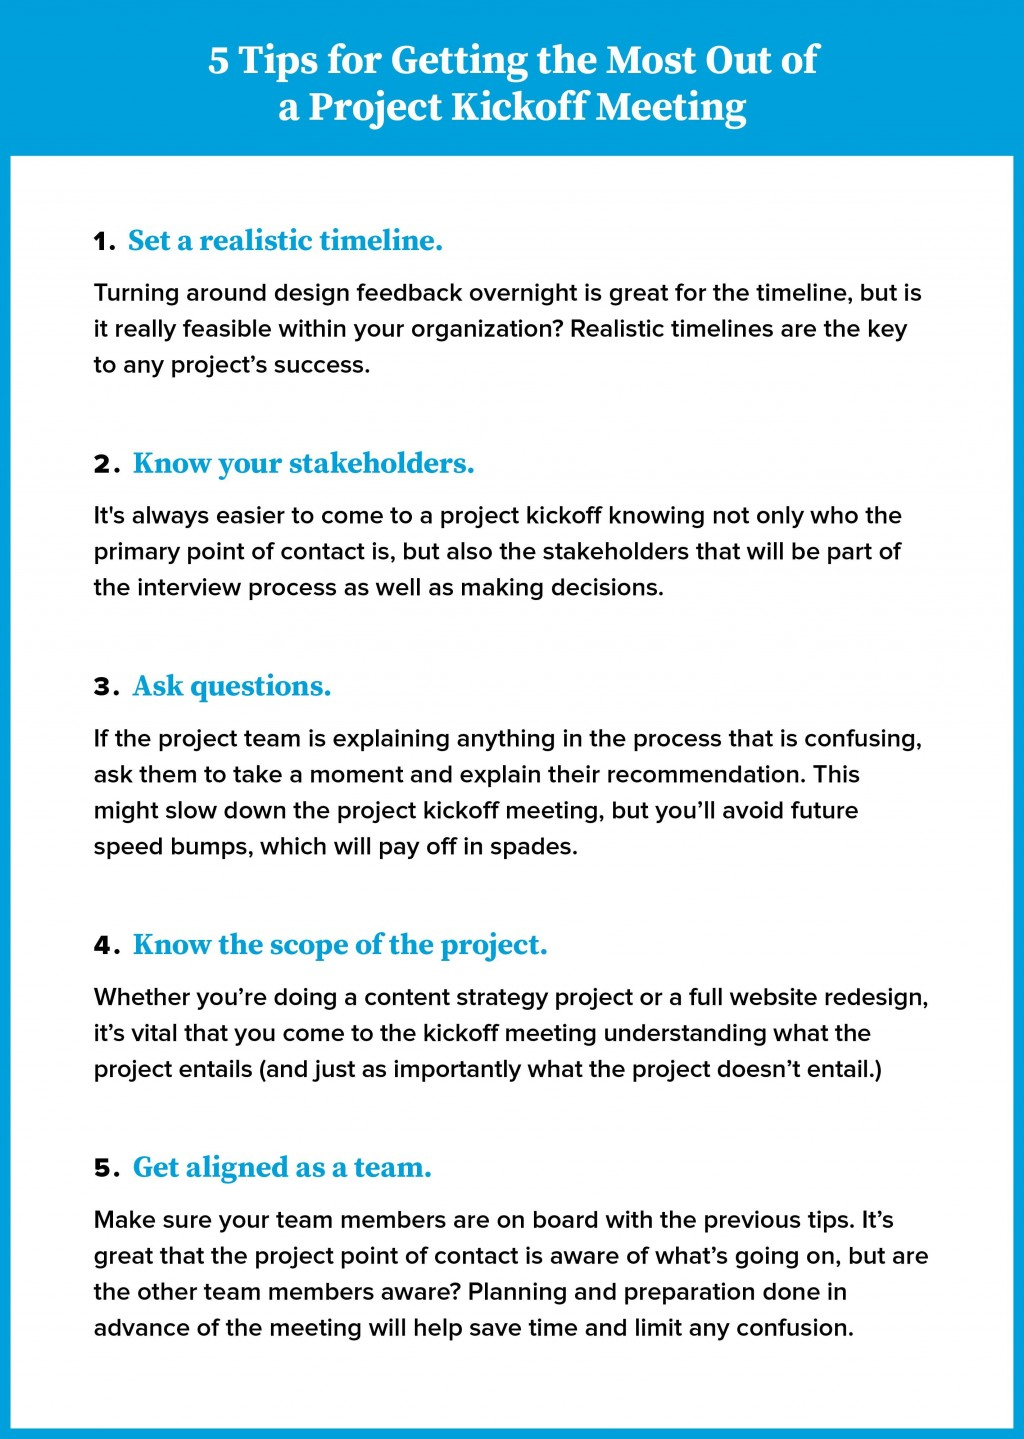 006 Awful Project Kickoff Meeting Email Template Sample  Kick OffLarge